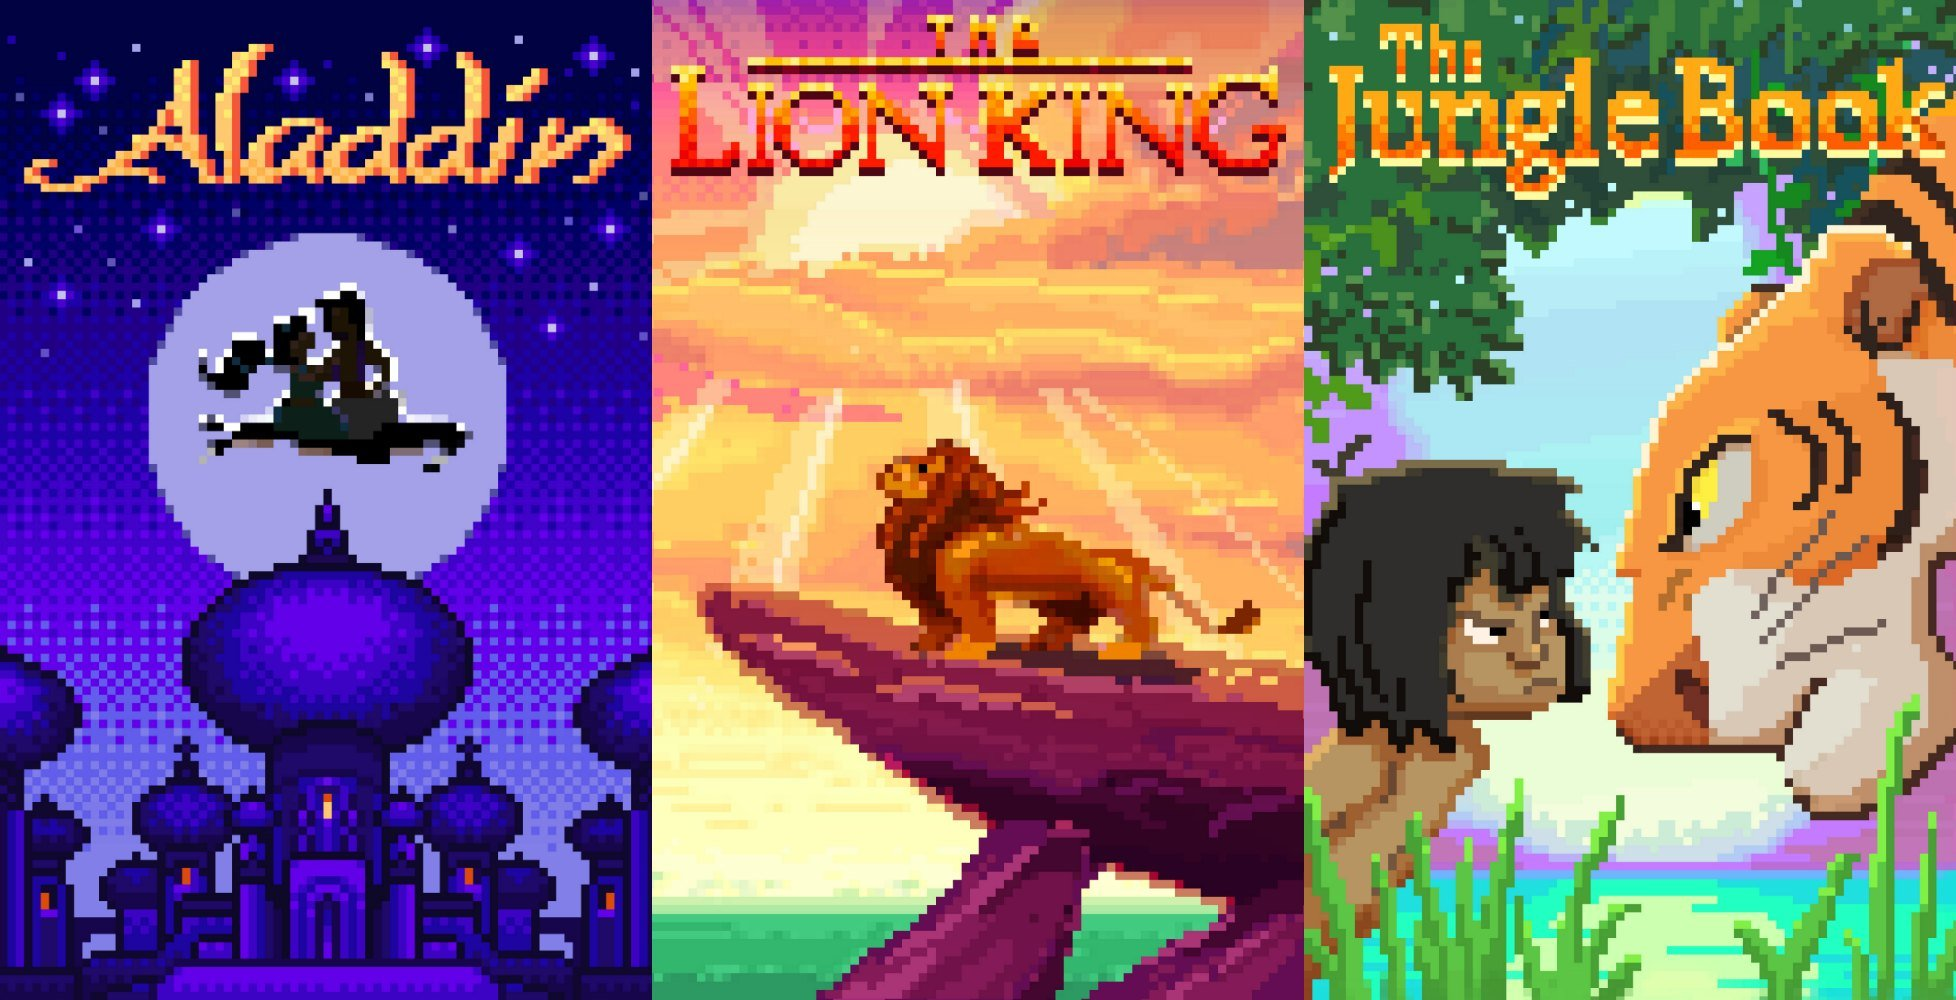 Retro Review: Three Disney 16-Bit Games Bring Back Both Fun and Frustration